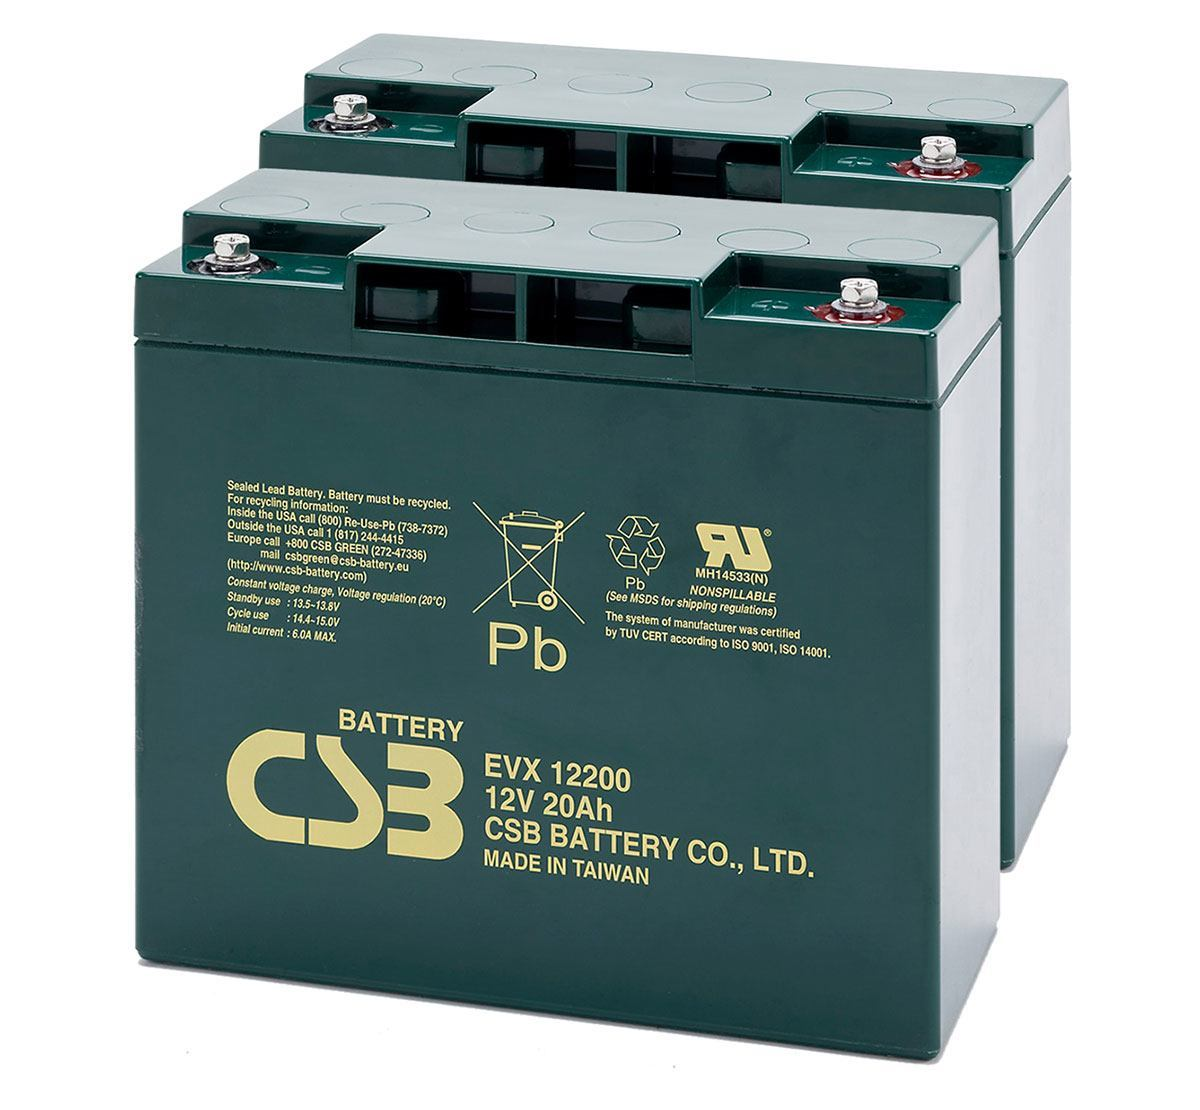 Pair of CSB EVX12200 12V 20Ah Mobility Scooter Batteries